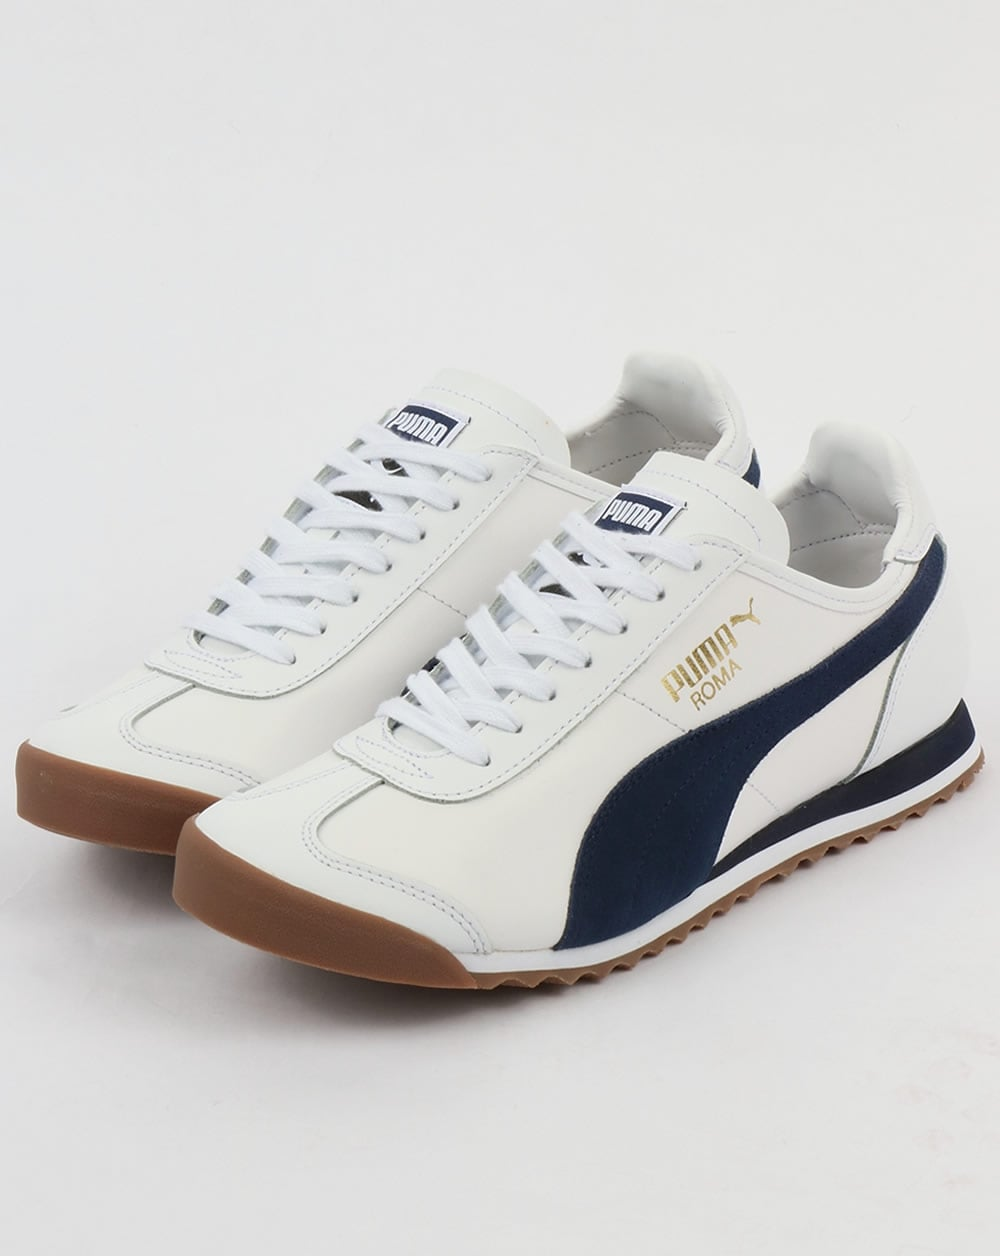 Puma Roma Leather 80s Trainers WhiteNavy